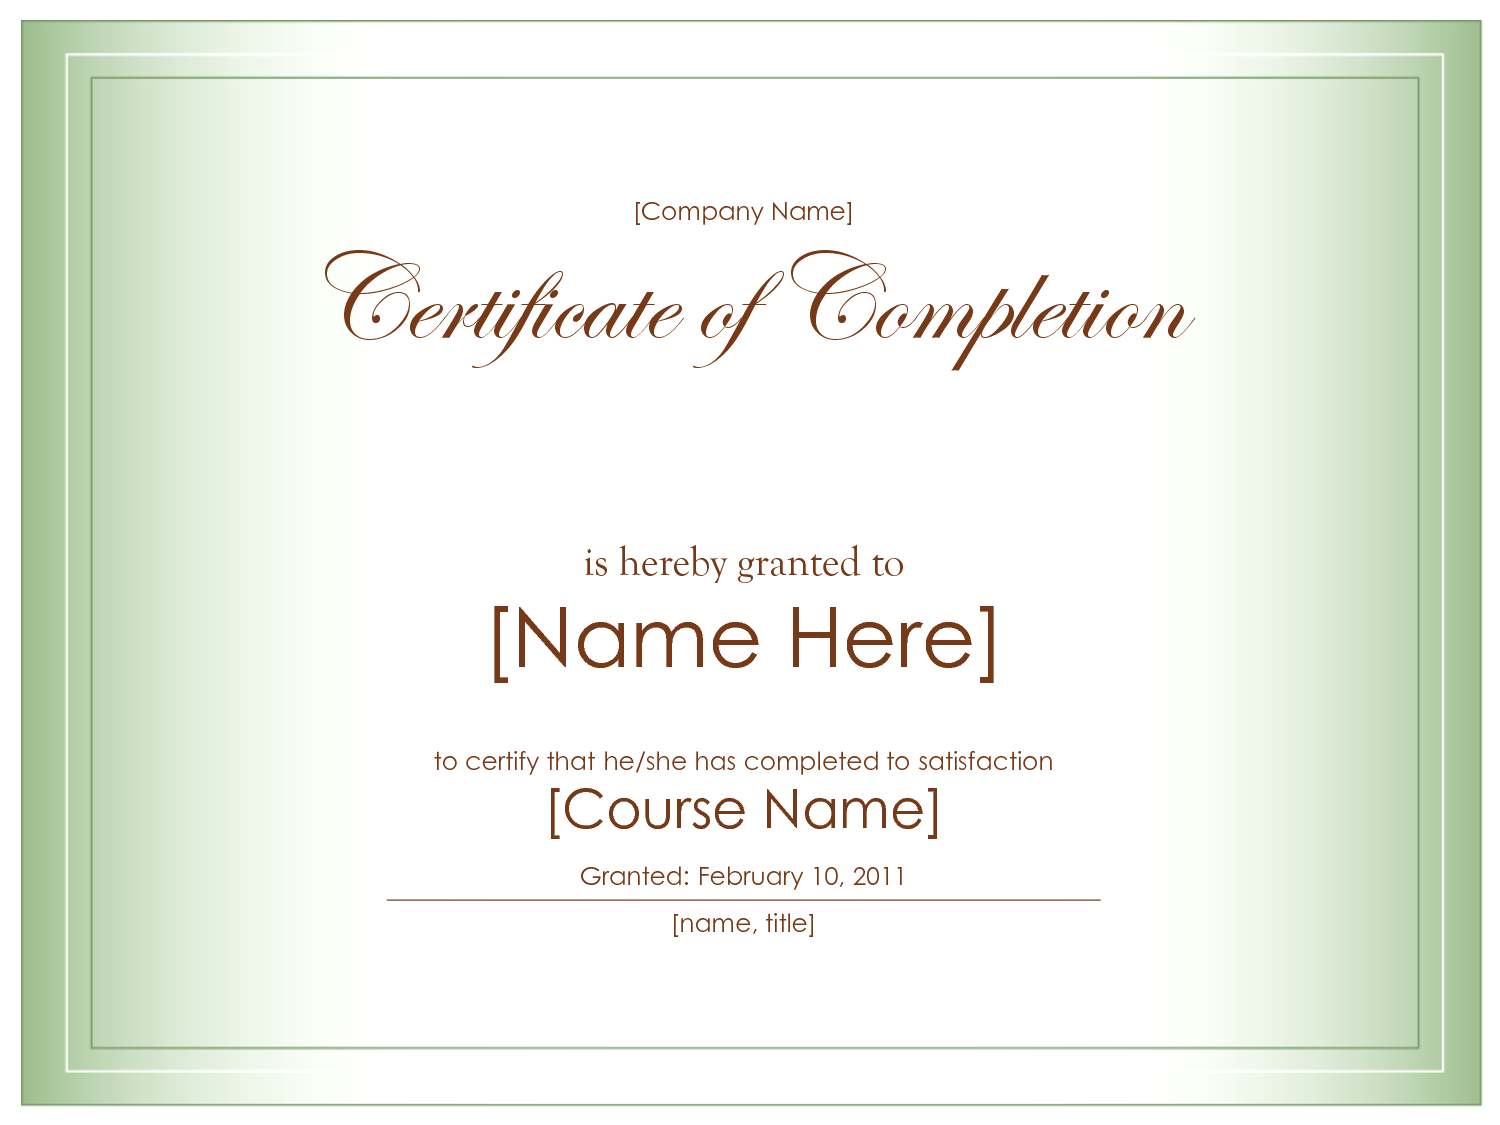 018 Best Images Of Certificate Completion Template Blank Free Via - Certificate Of Completion Template Free Printable